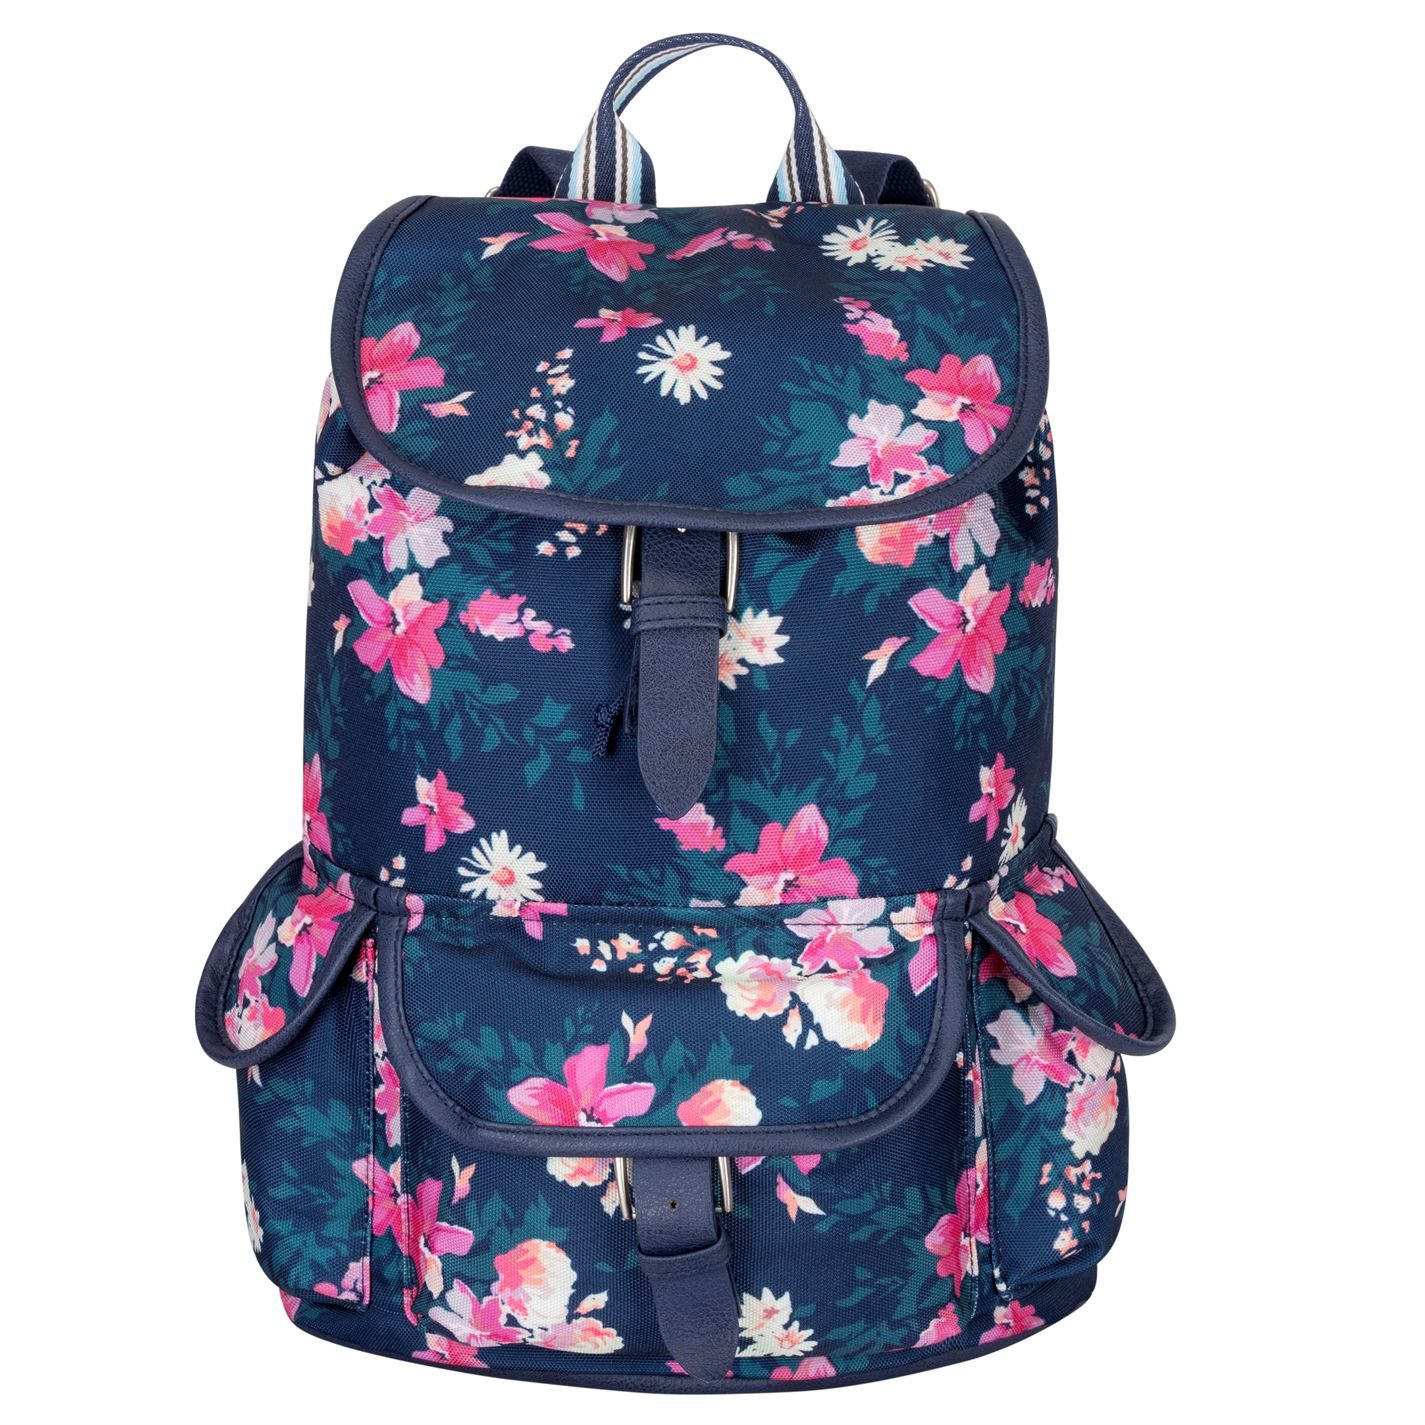 Miso Canvas Backpack Navy Floral